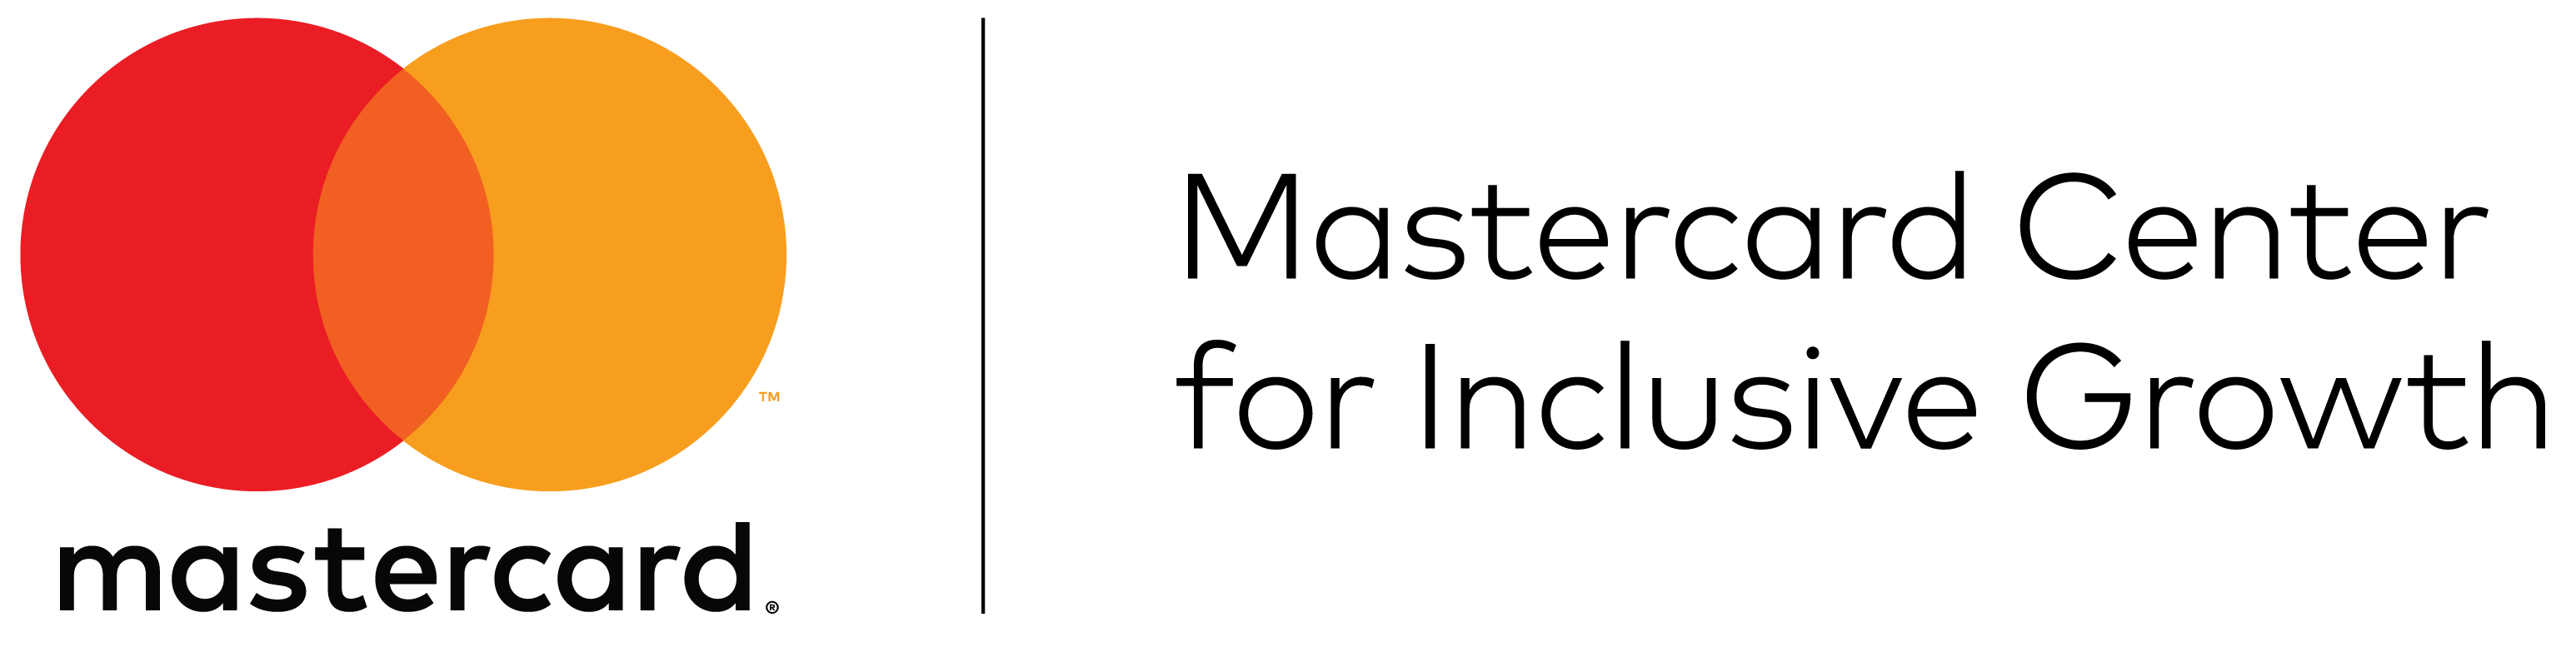 Master Card Center for Inclusive Growth